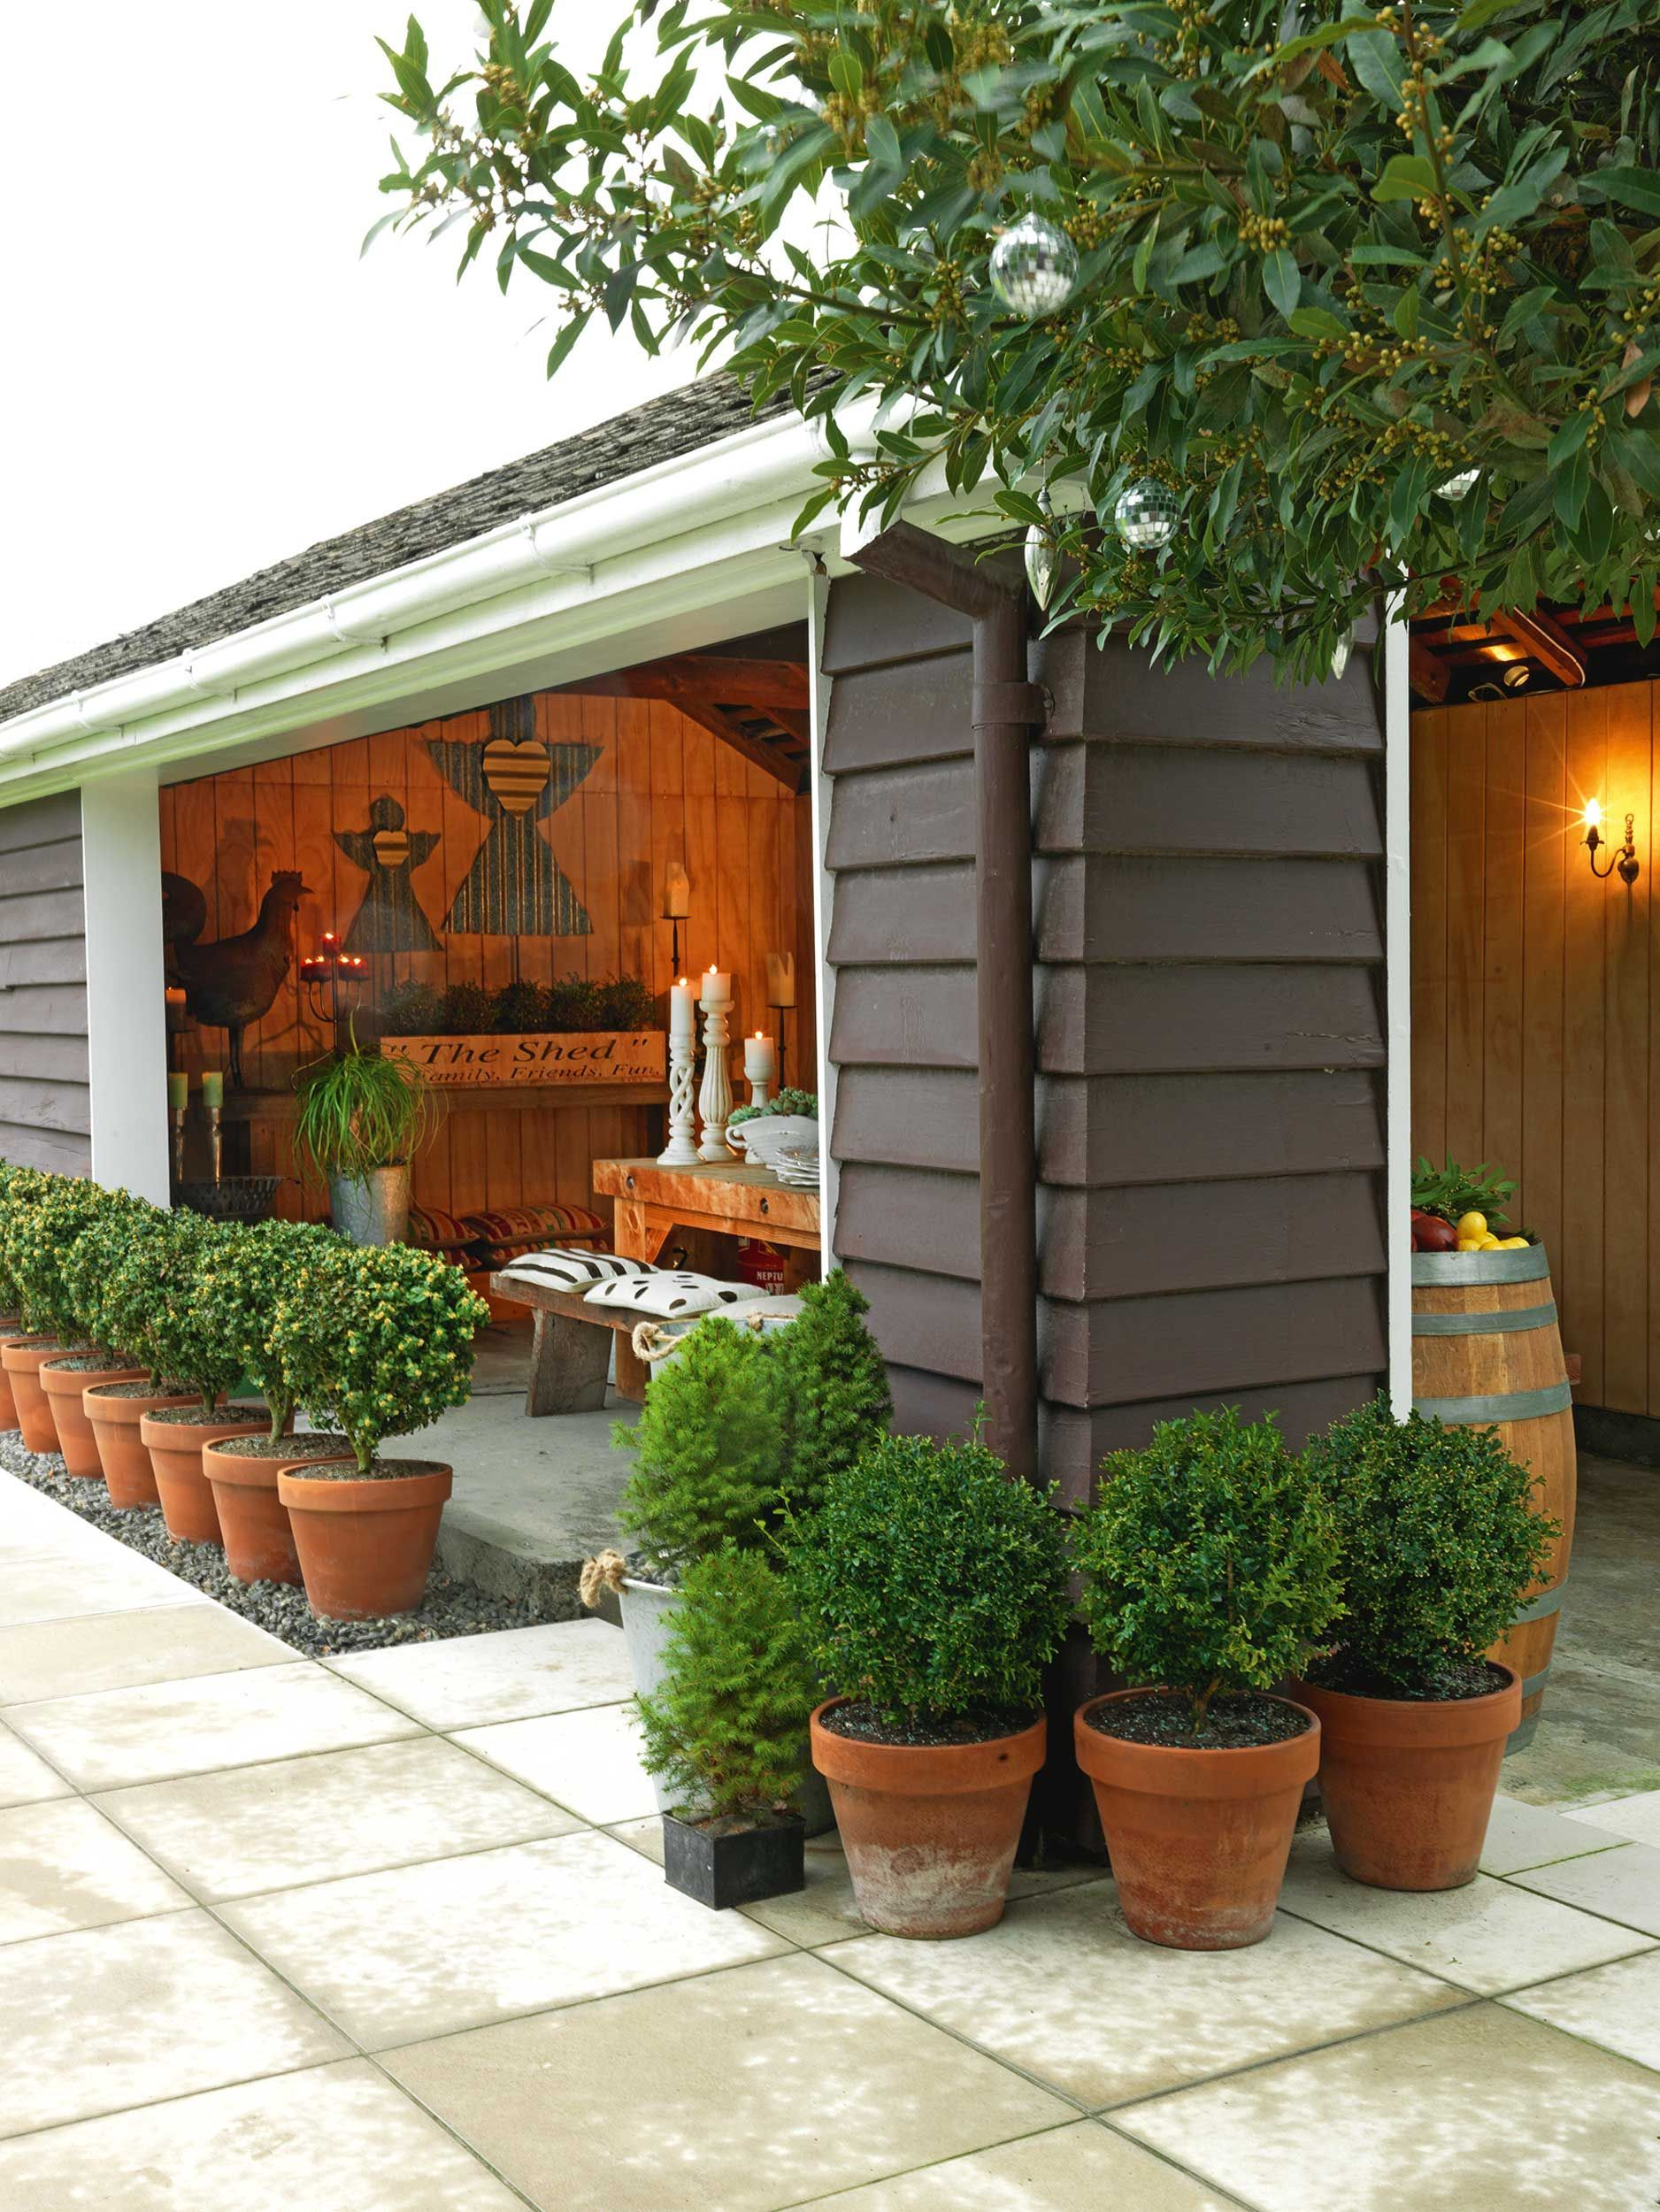 15 Clever Ways How to Improve Backyard Room Ideas